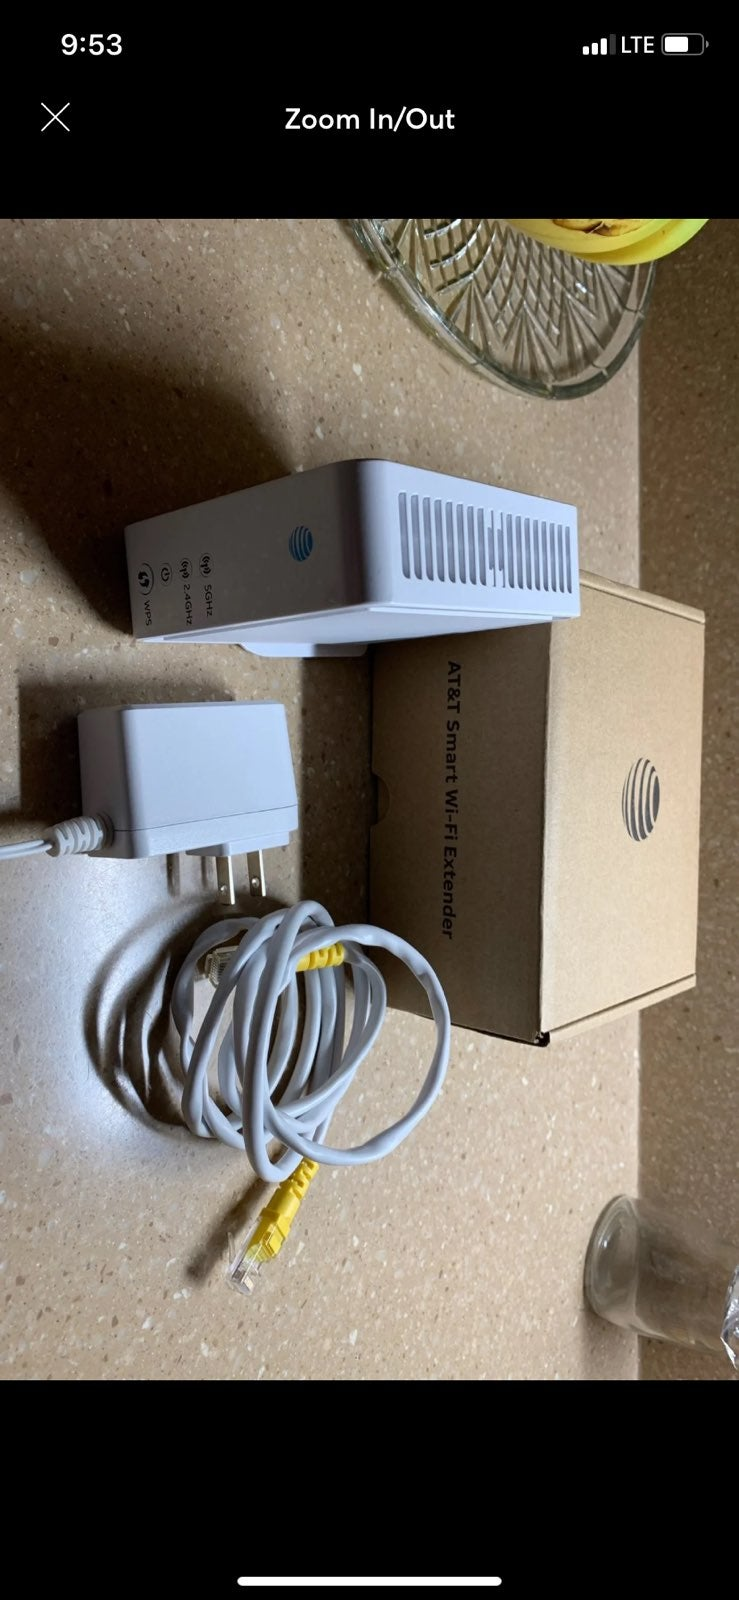 AT&T smart WIFI Extender